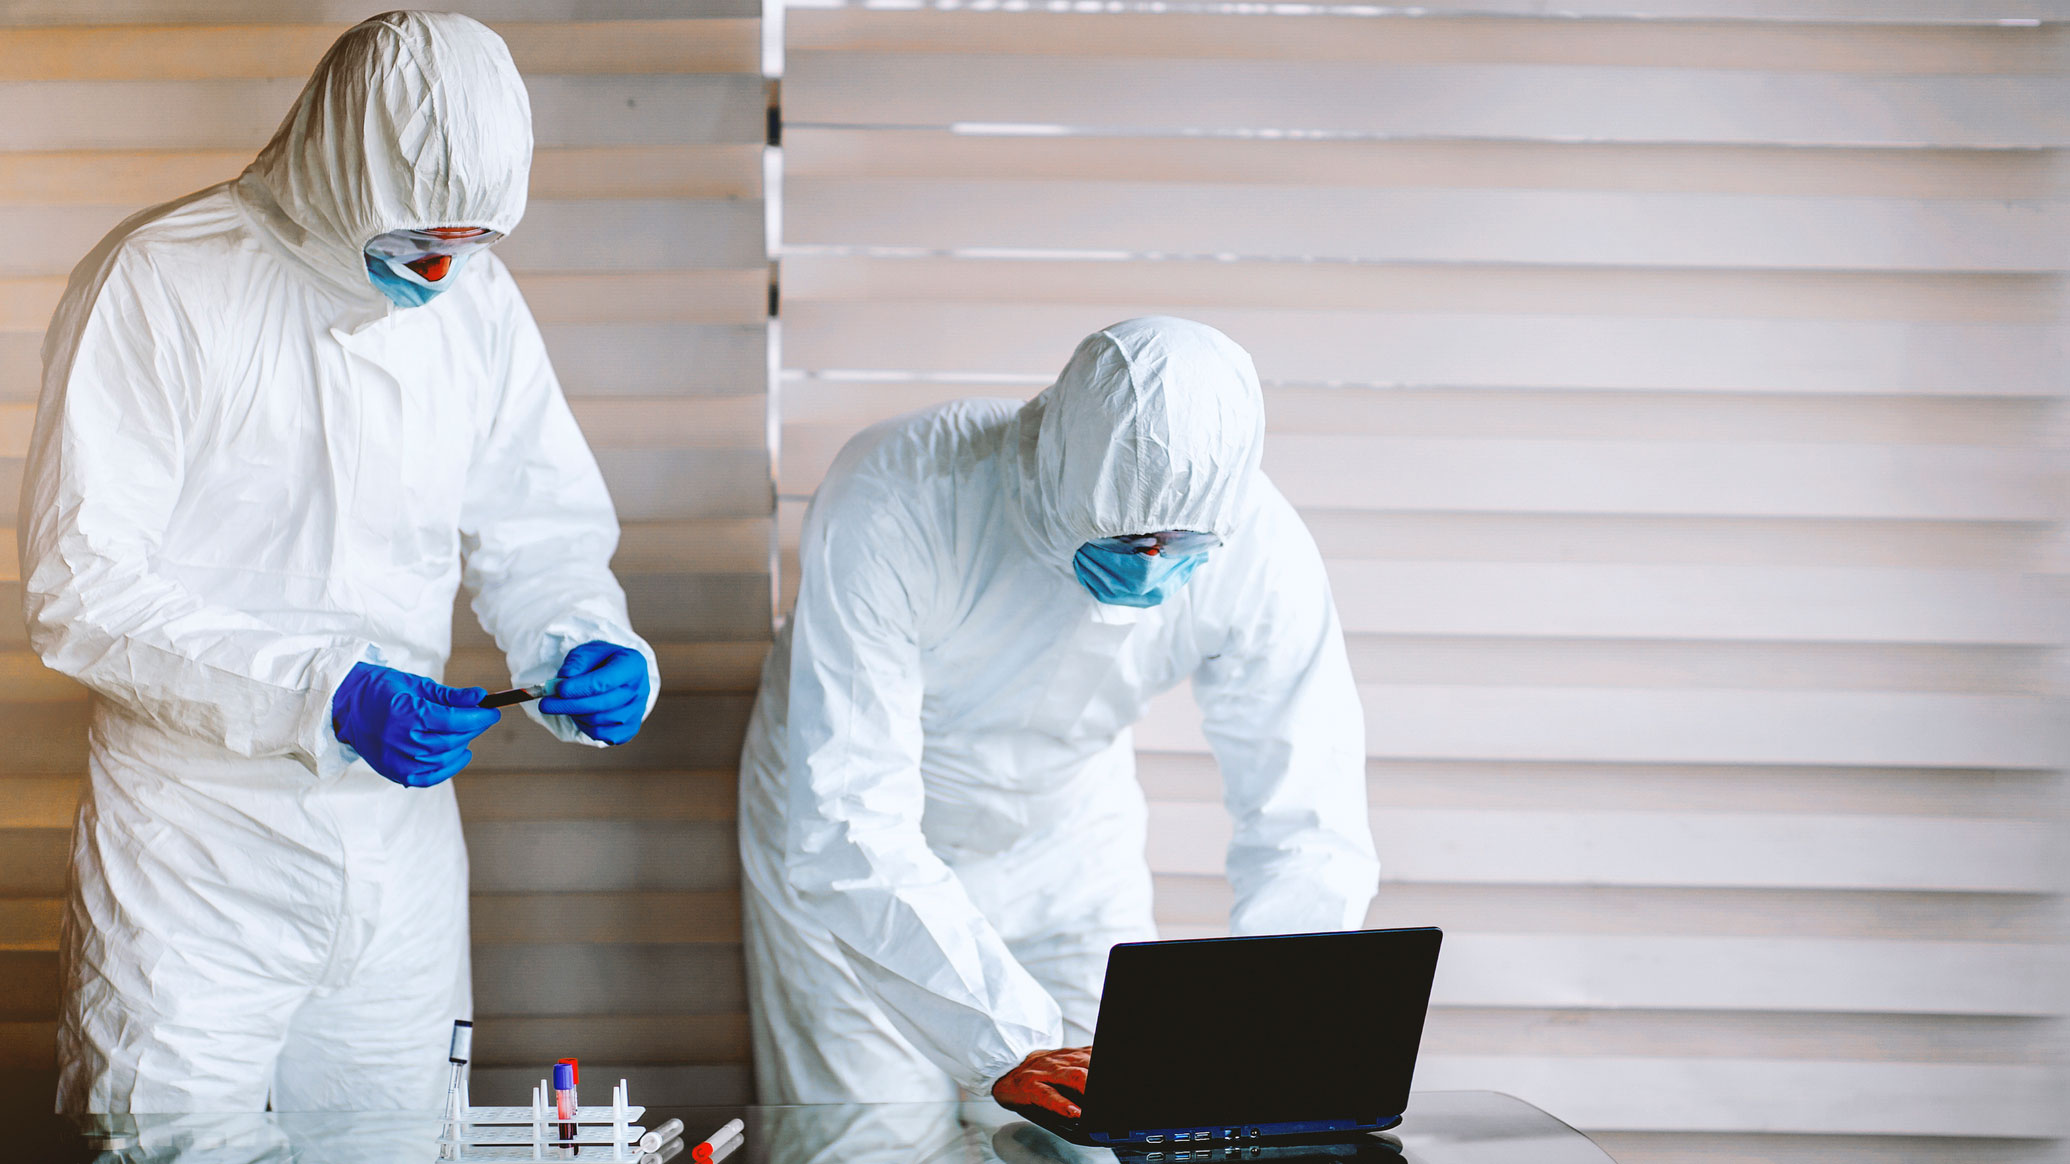 Two people in chemical suits examining test tubes and using a laptop